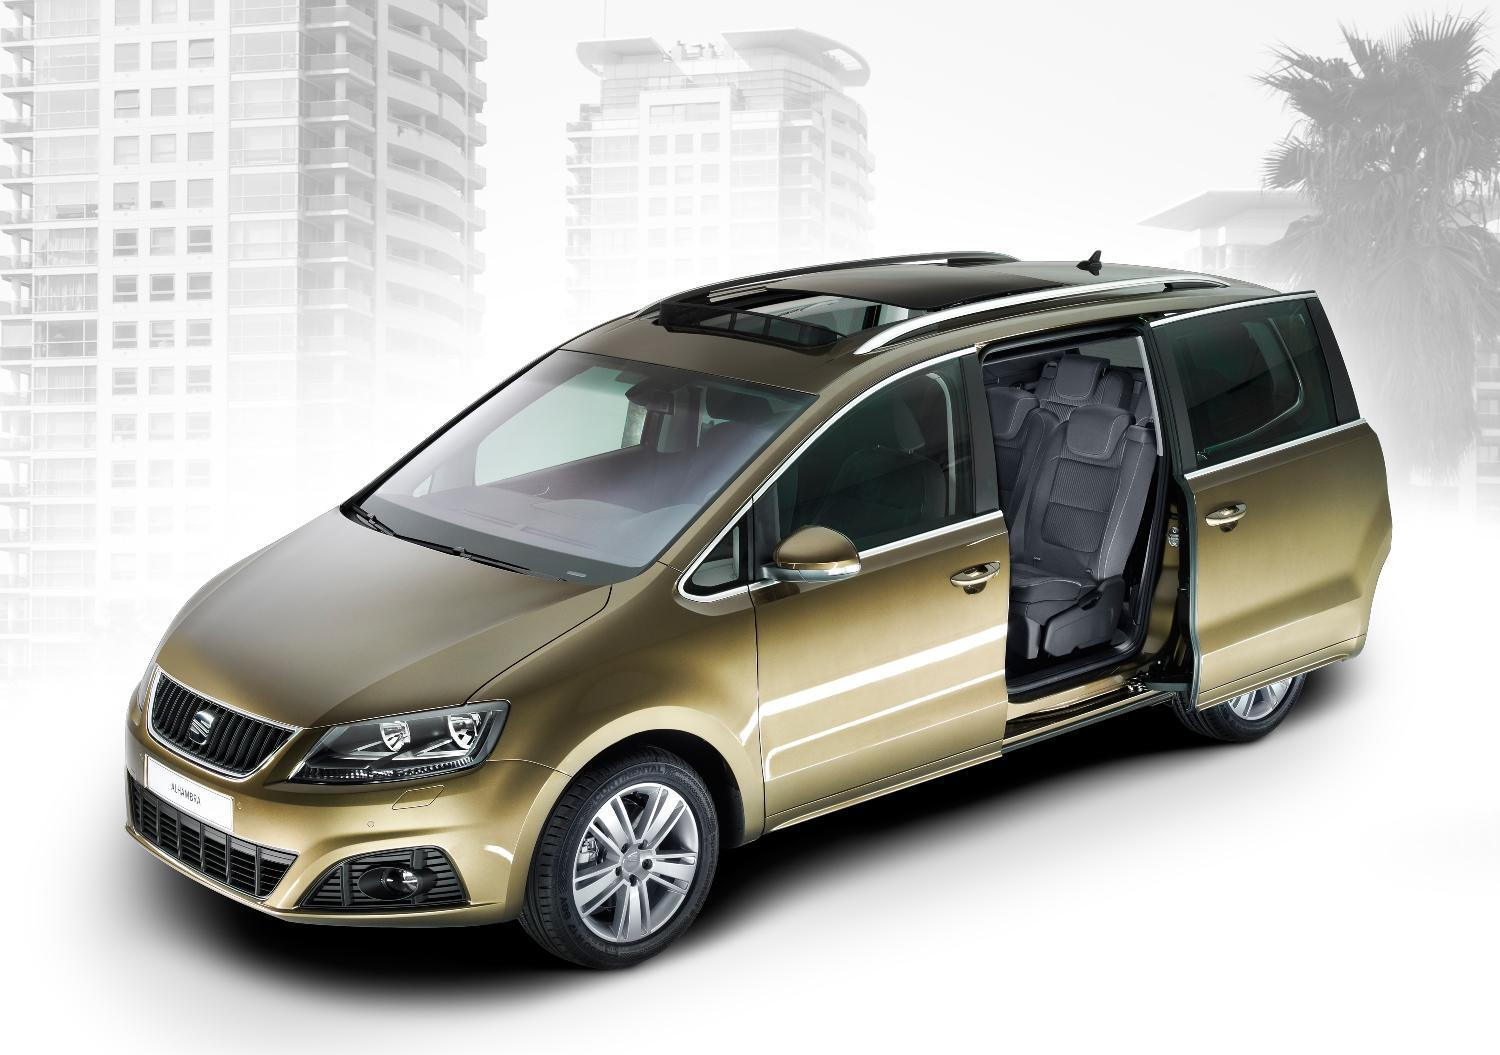 seat alhambra se 2 0 tdi cr ecomotive 140 ps car write ups. Black Bedroom Furniture Sets. Home Design Ideas